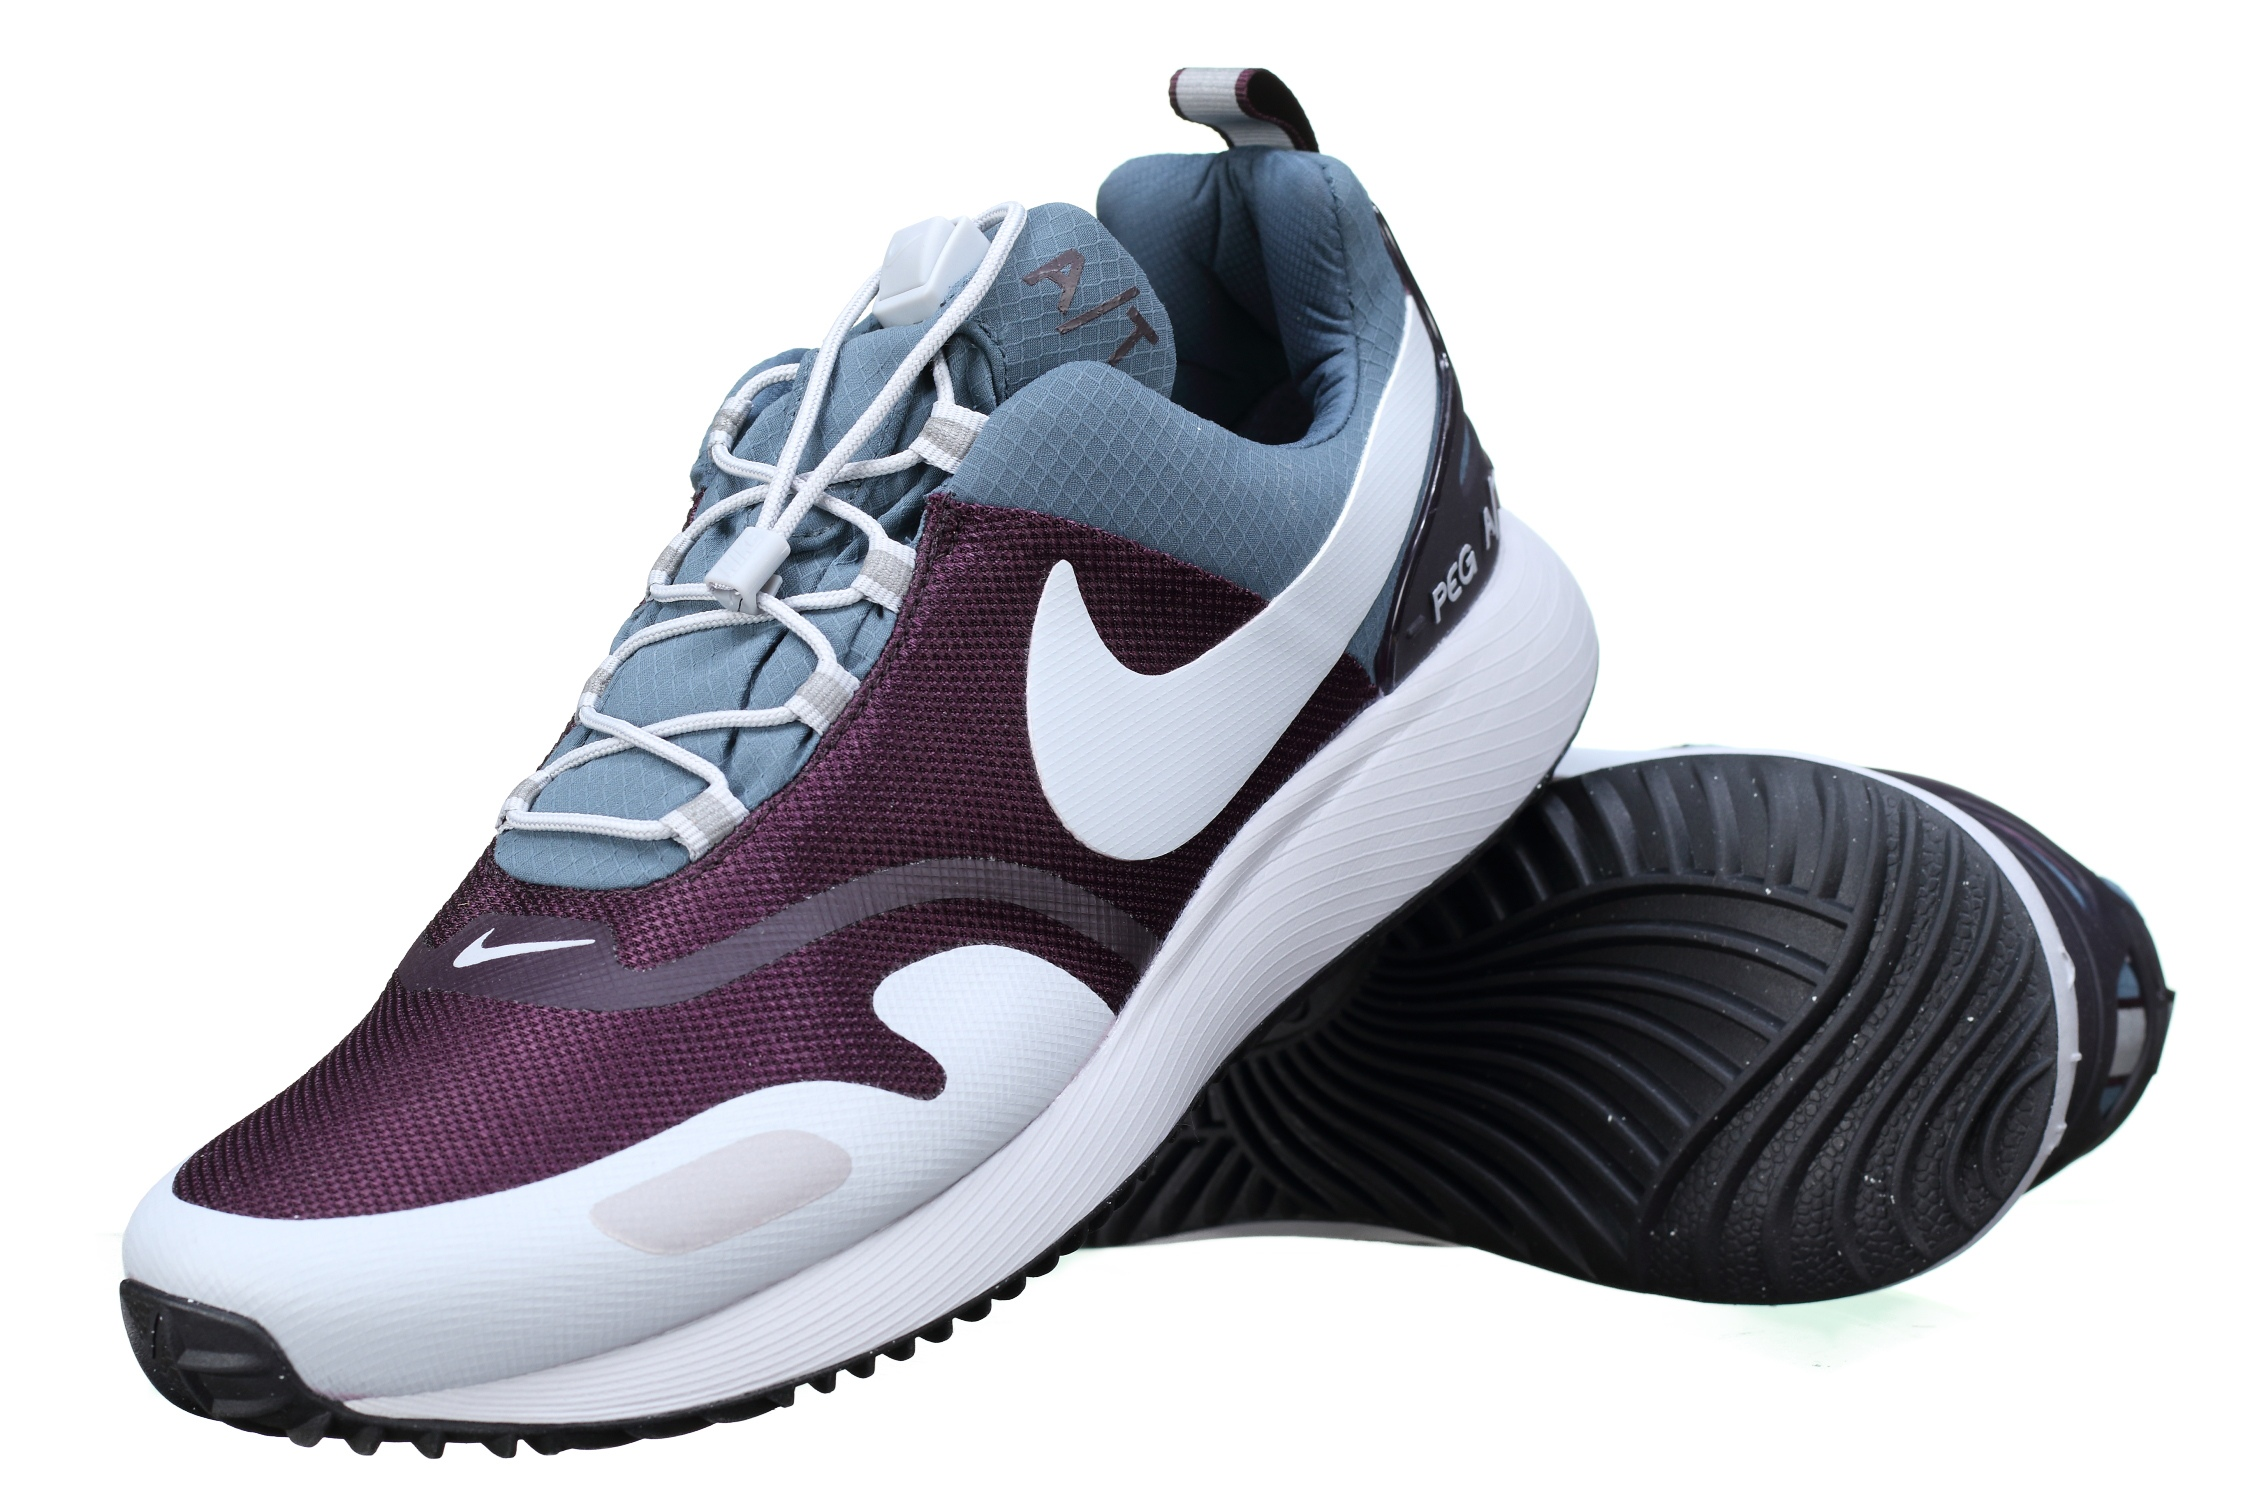 http://www.leadermode.com/137158/nike-nike-air-pegasus-at-winte-924497-400-gris.jpg